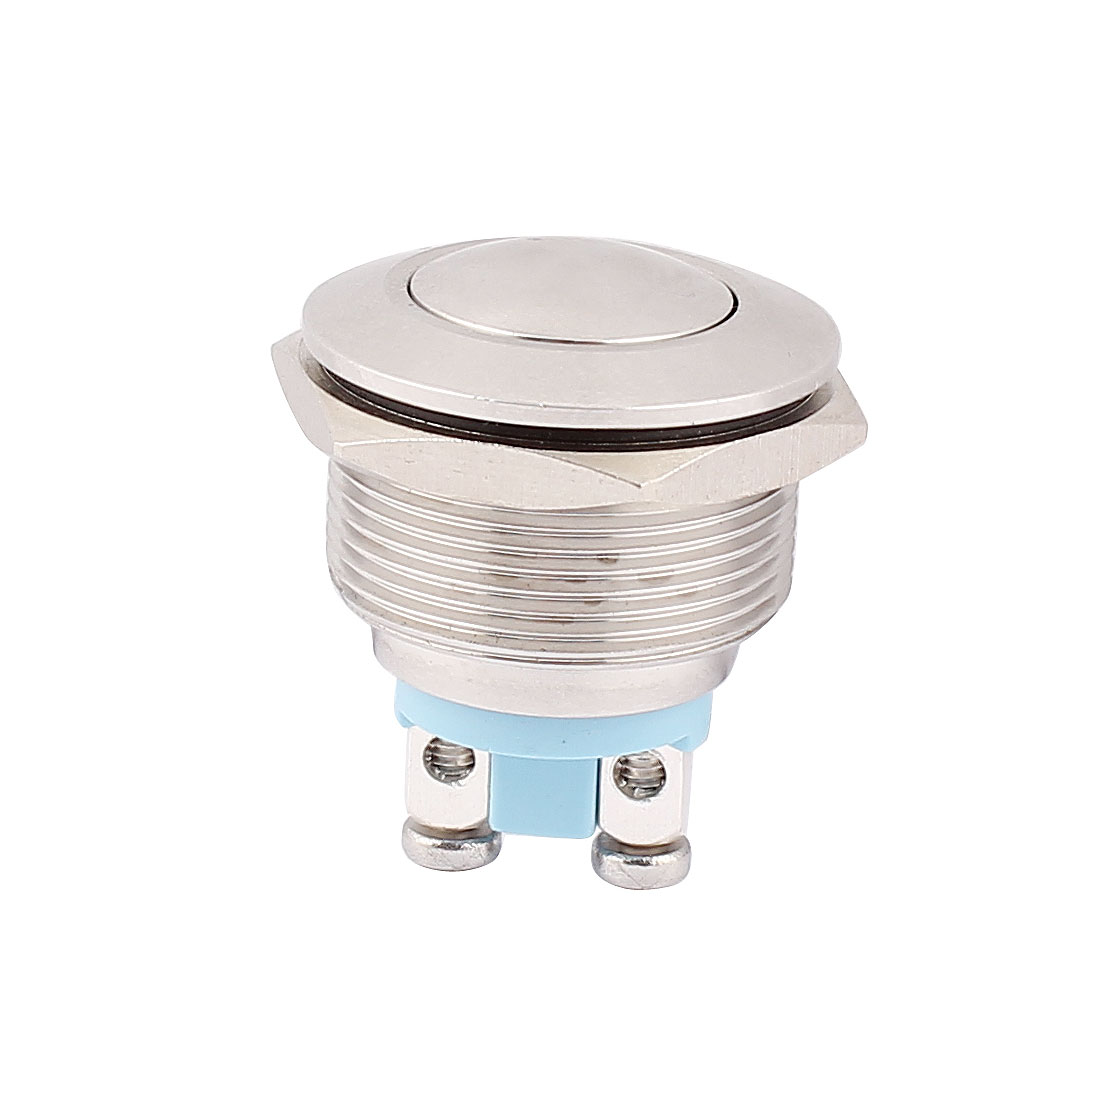 22mm Mounted Thread SPST Ball Head Momentary Push Button Switch